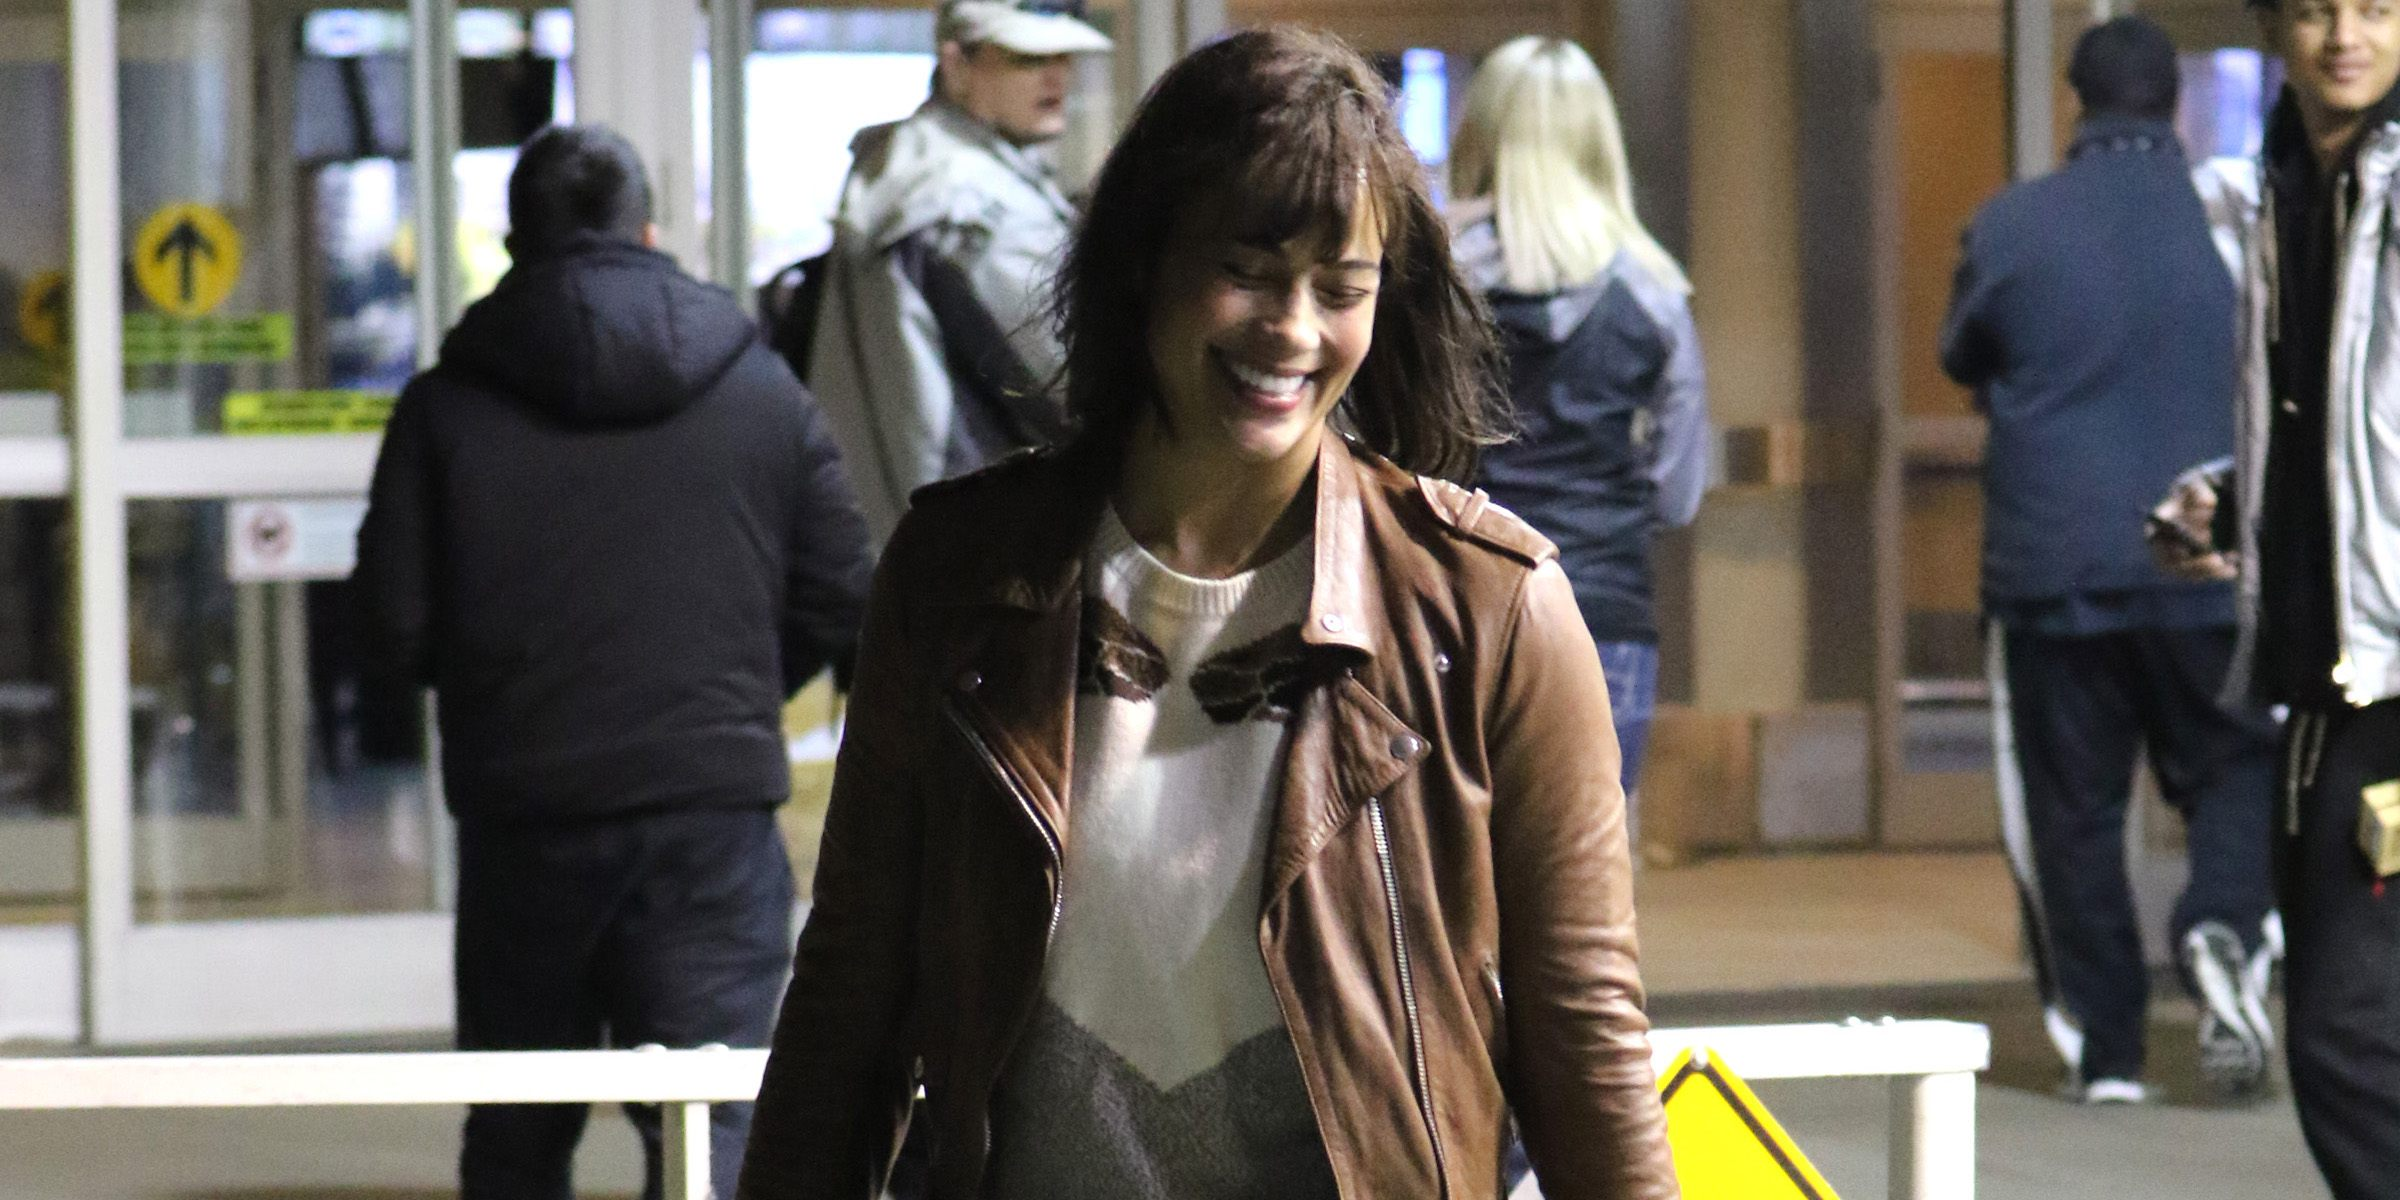 Devon Sawa and Paula Patton spotted in Vancouver (PHOTOS)